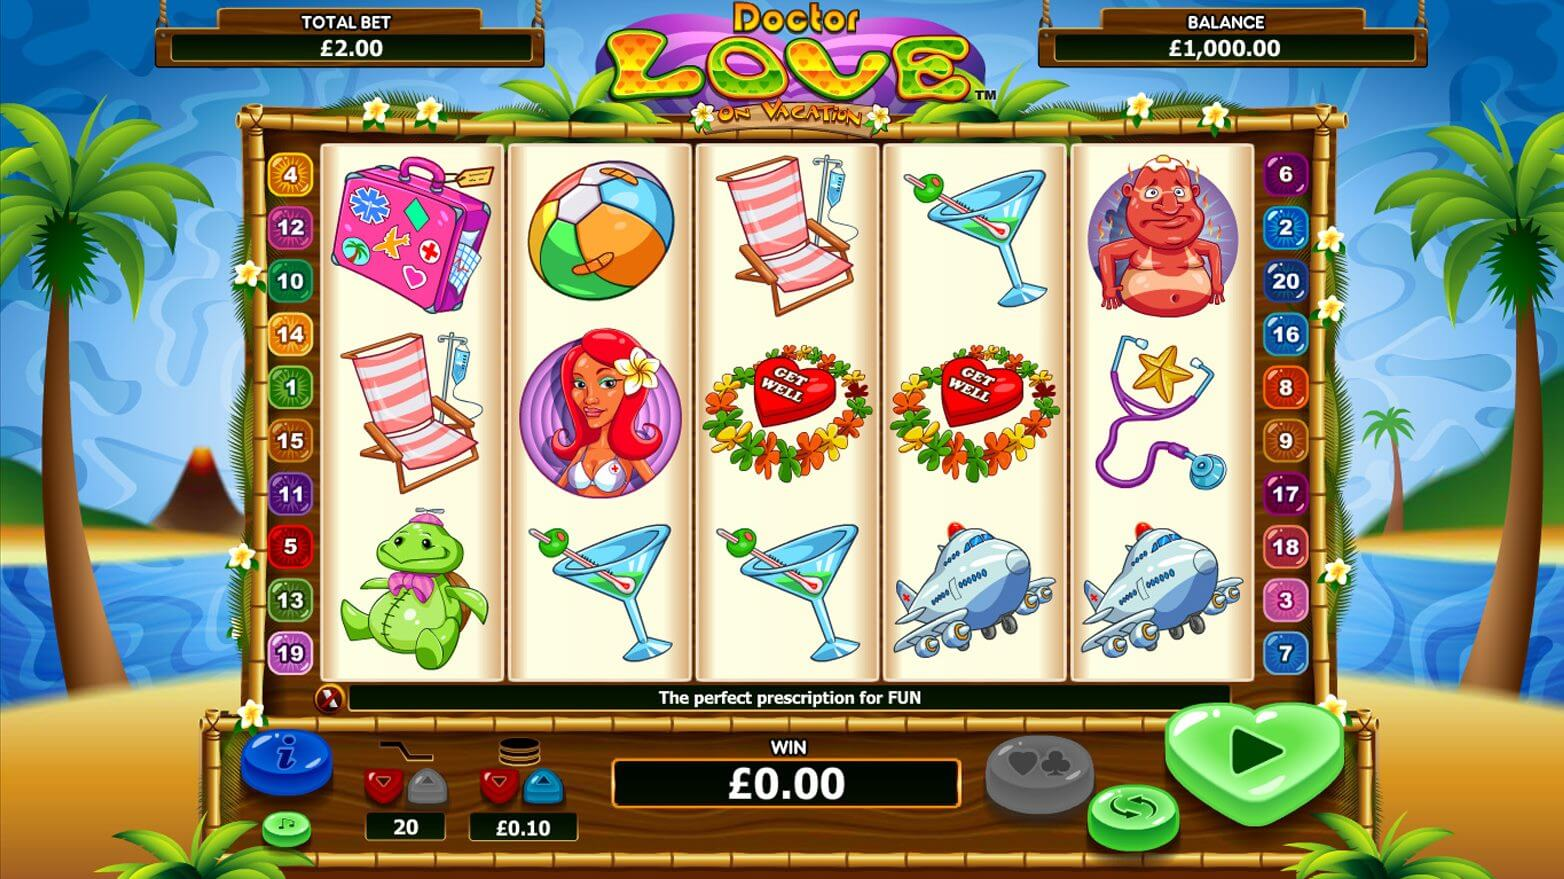 Dr Love on Vacation Slot Gameplay